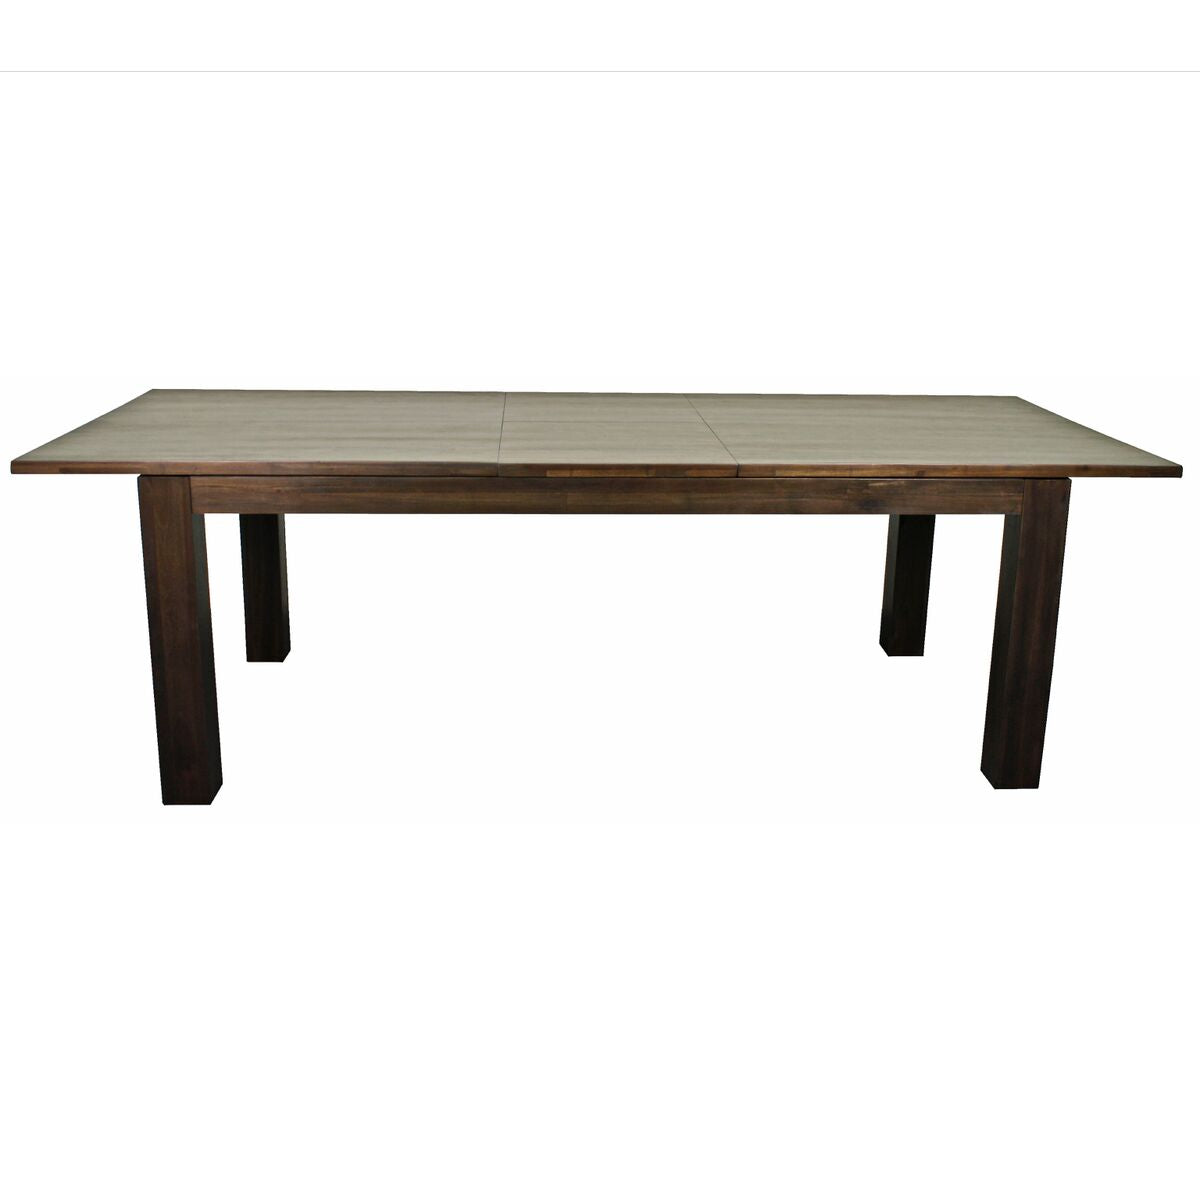 "Solid Acacia 78"" Executive Desk or Conference Table w/ Cocoa Glaze"